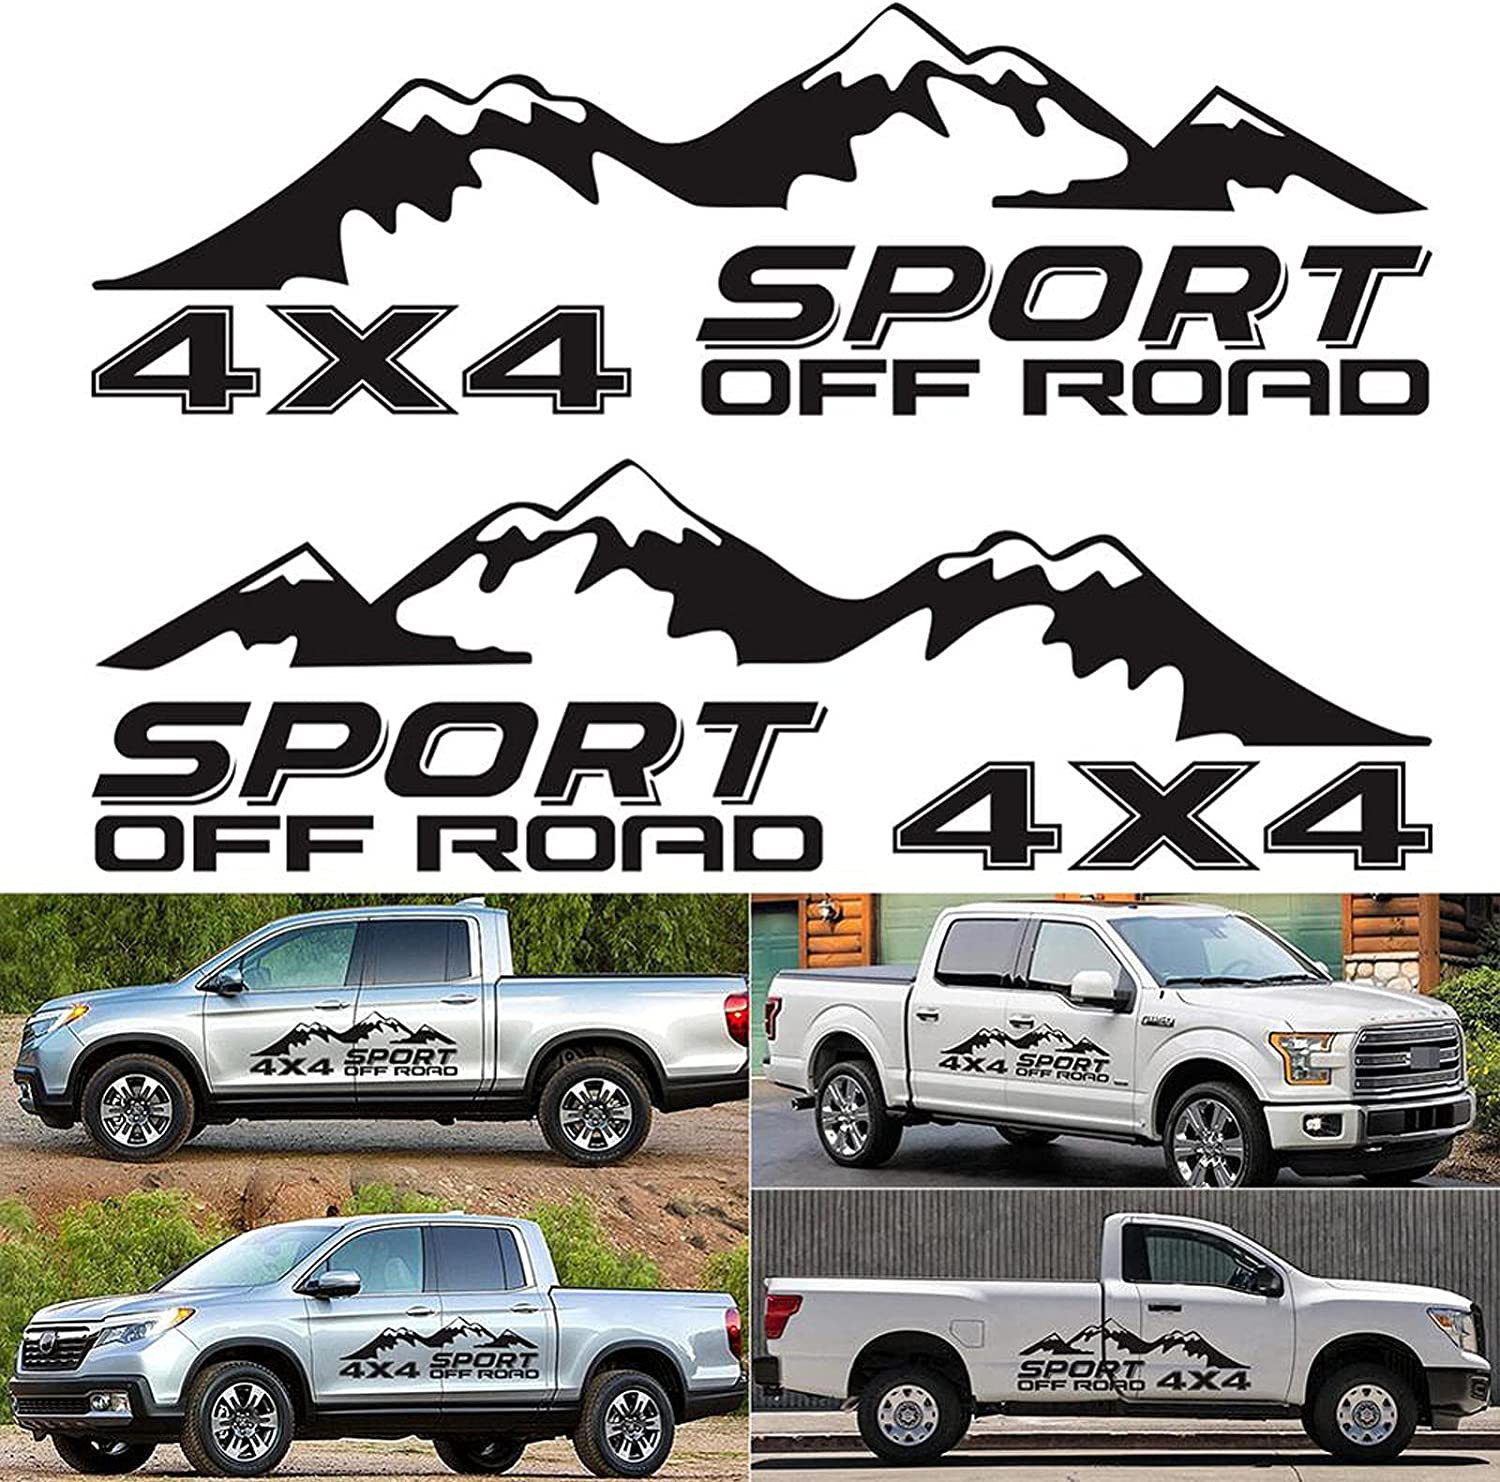 nasASLK Car Vinyl Stripe Max 85% OFF Indianapolis Mall 4x4 Off-Road Image Graphic Decals S and